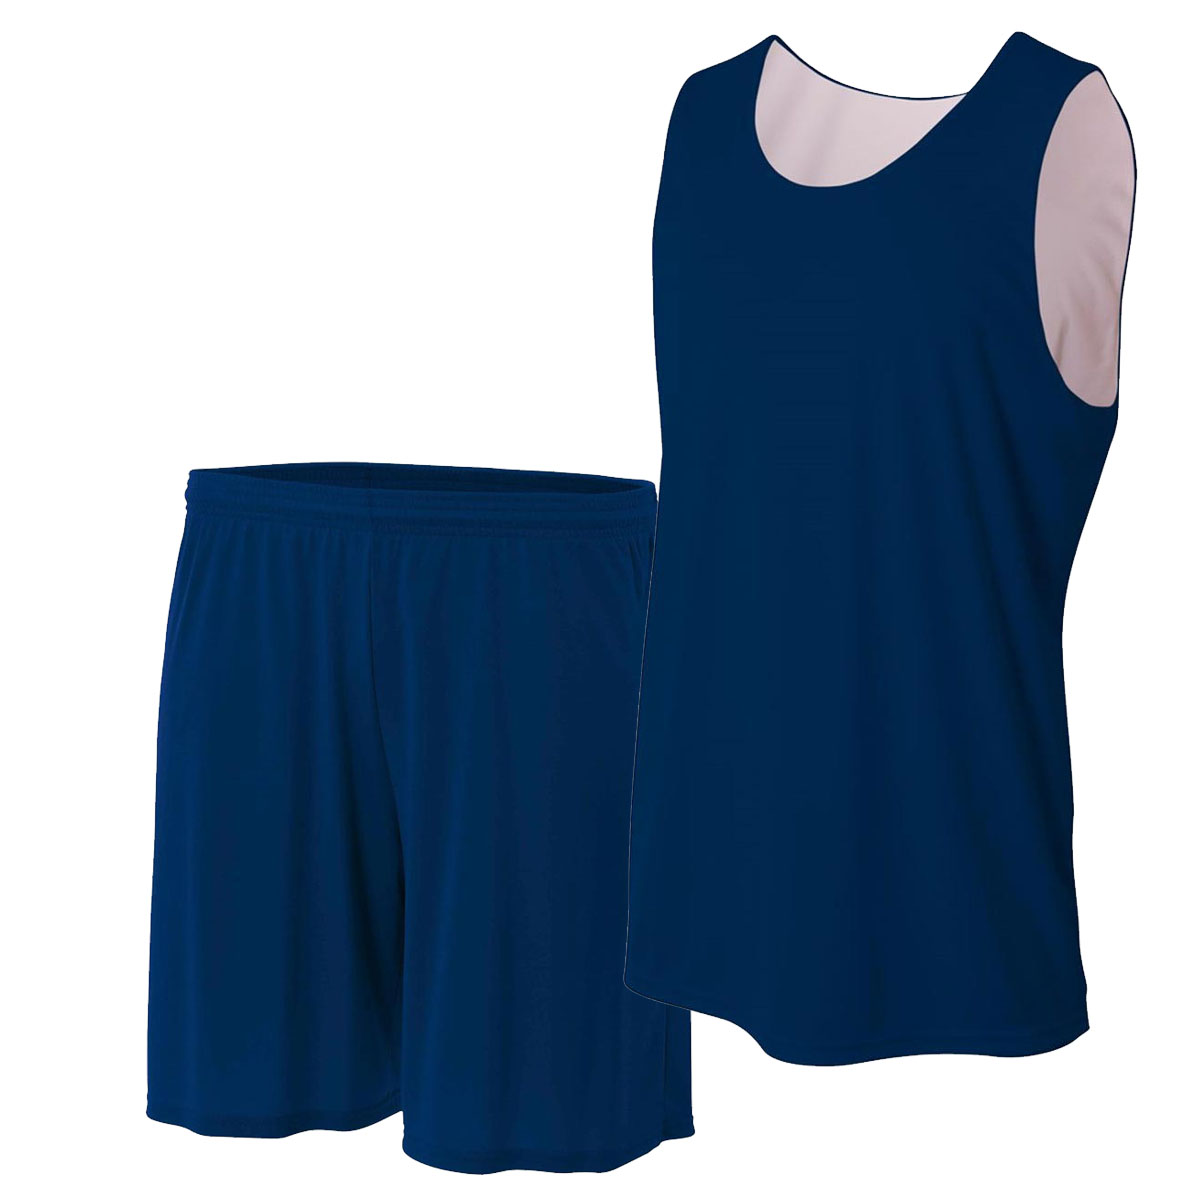 Reversible Basketball Uniforms Manufacturers in Jalandhar in Bangladesh